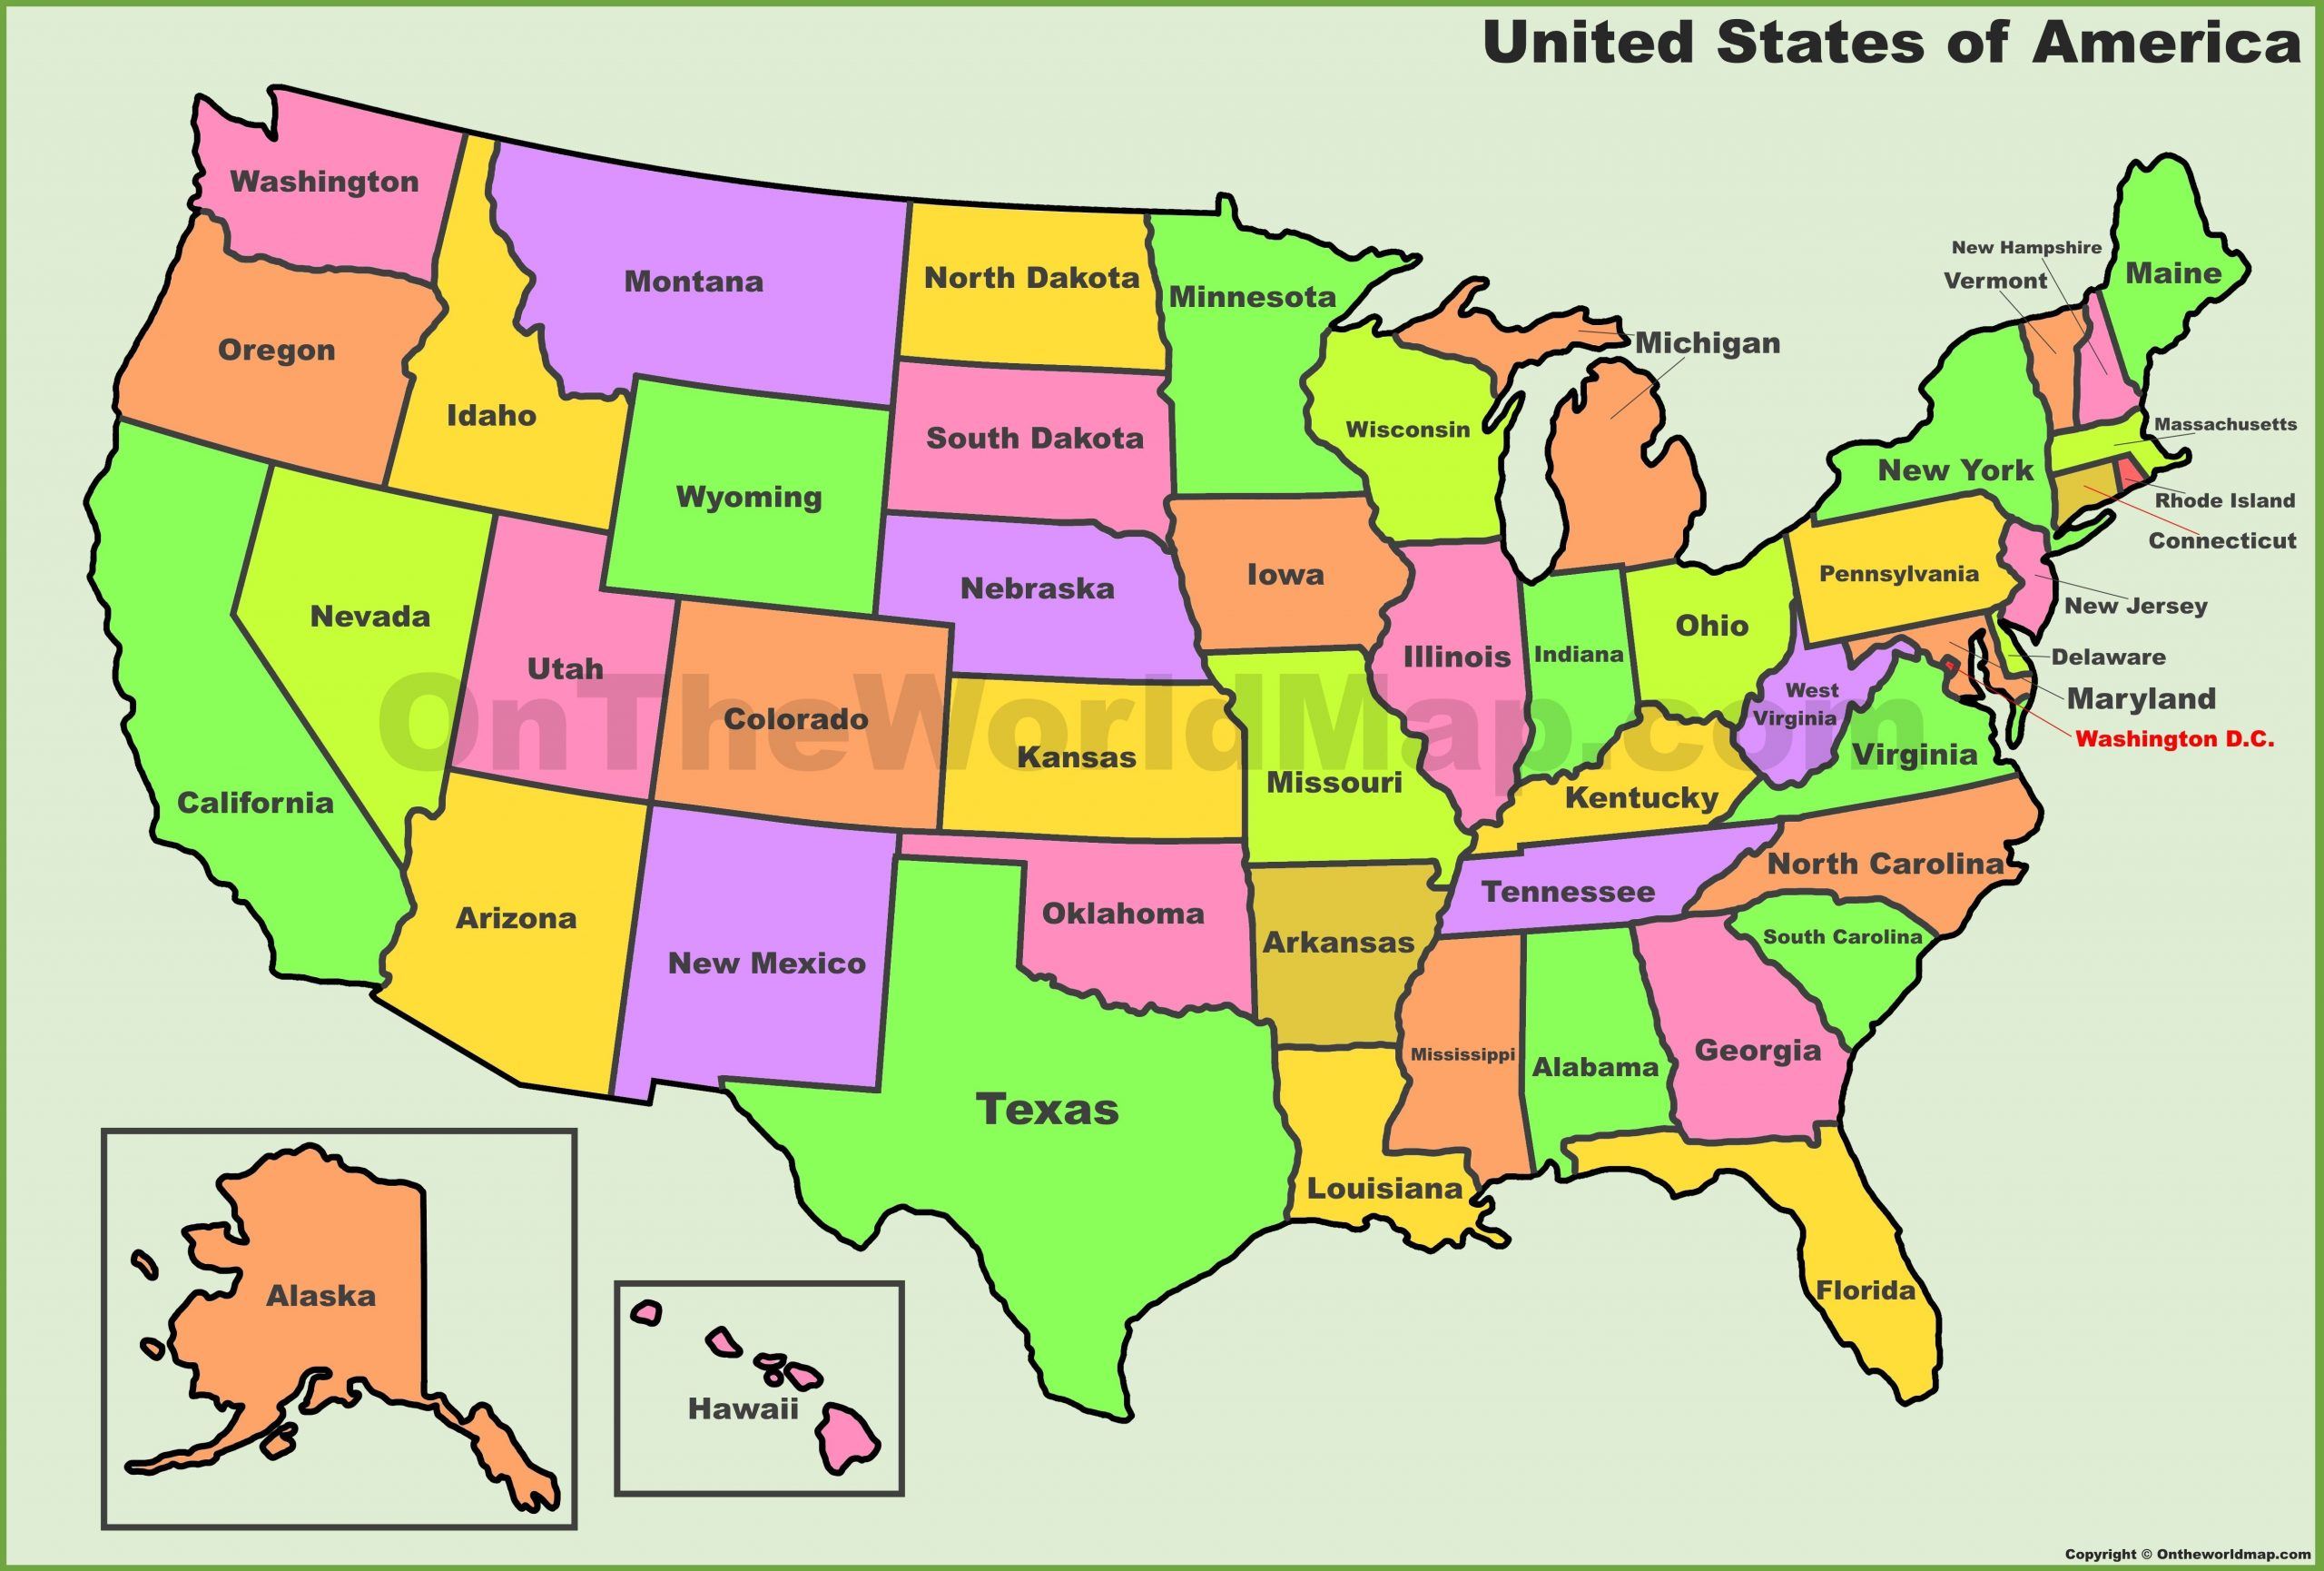 State Quiz Printable Usa States Map This Website Has A ton Of Printable Maps